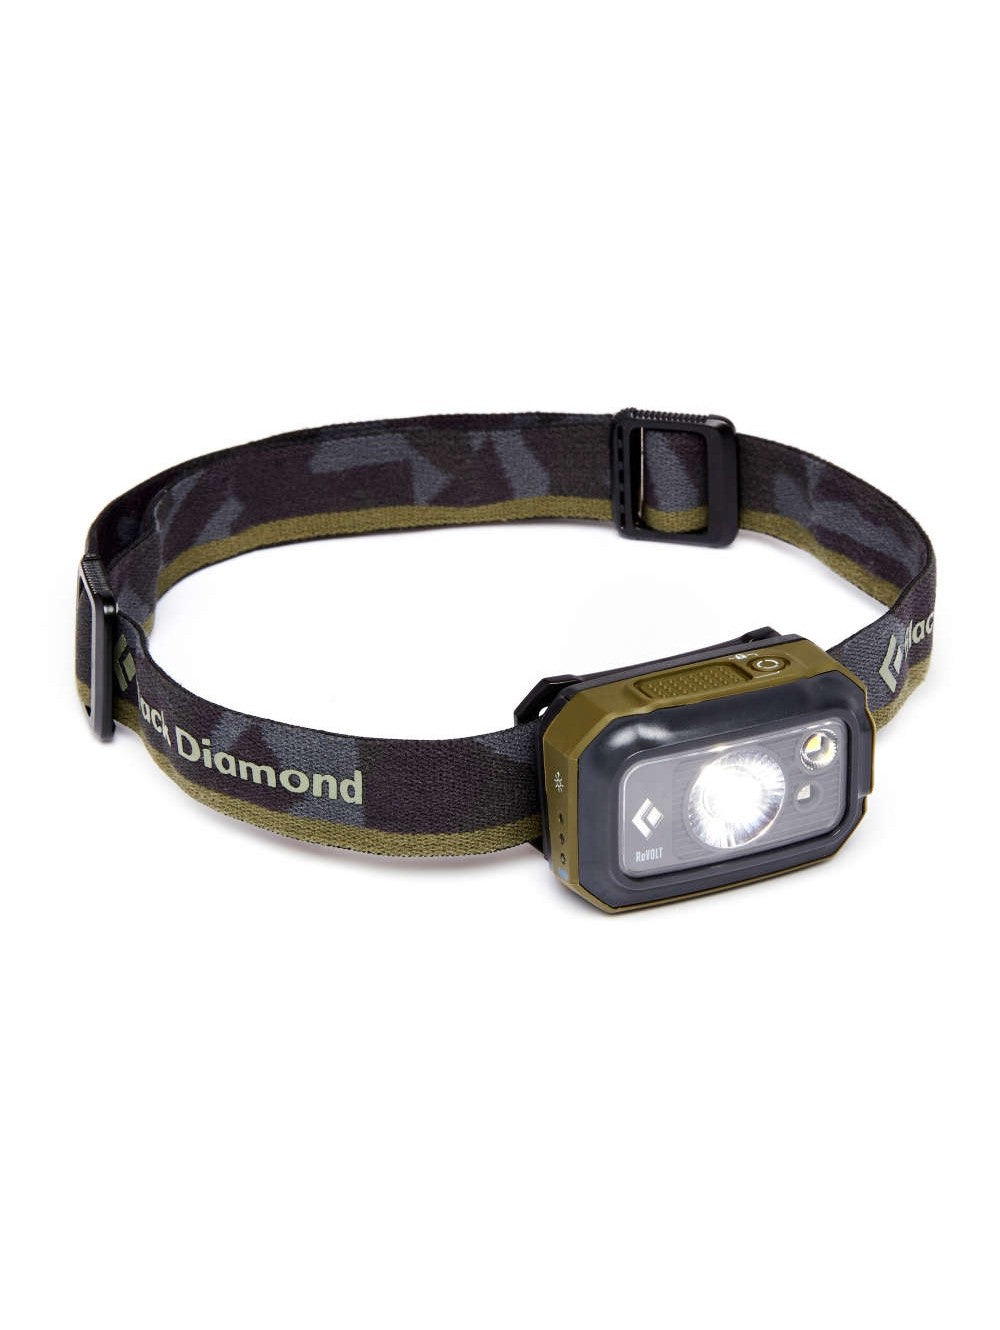 BLACK DIAMOND REVOLT 350 LUMENS HEAD TORCH - DARK OLIVE -  - Mansfield Hunting & Fishing - Products to prepare for Corona Virus